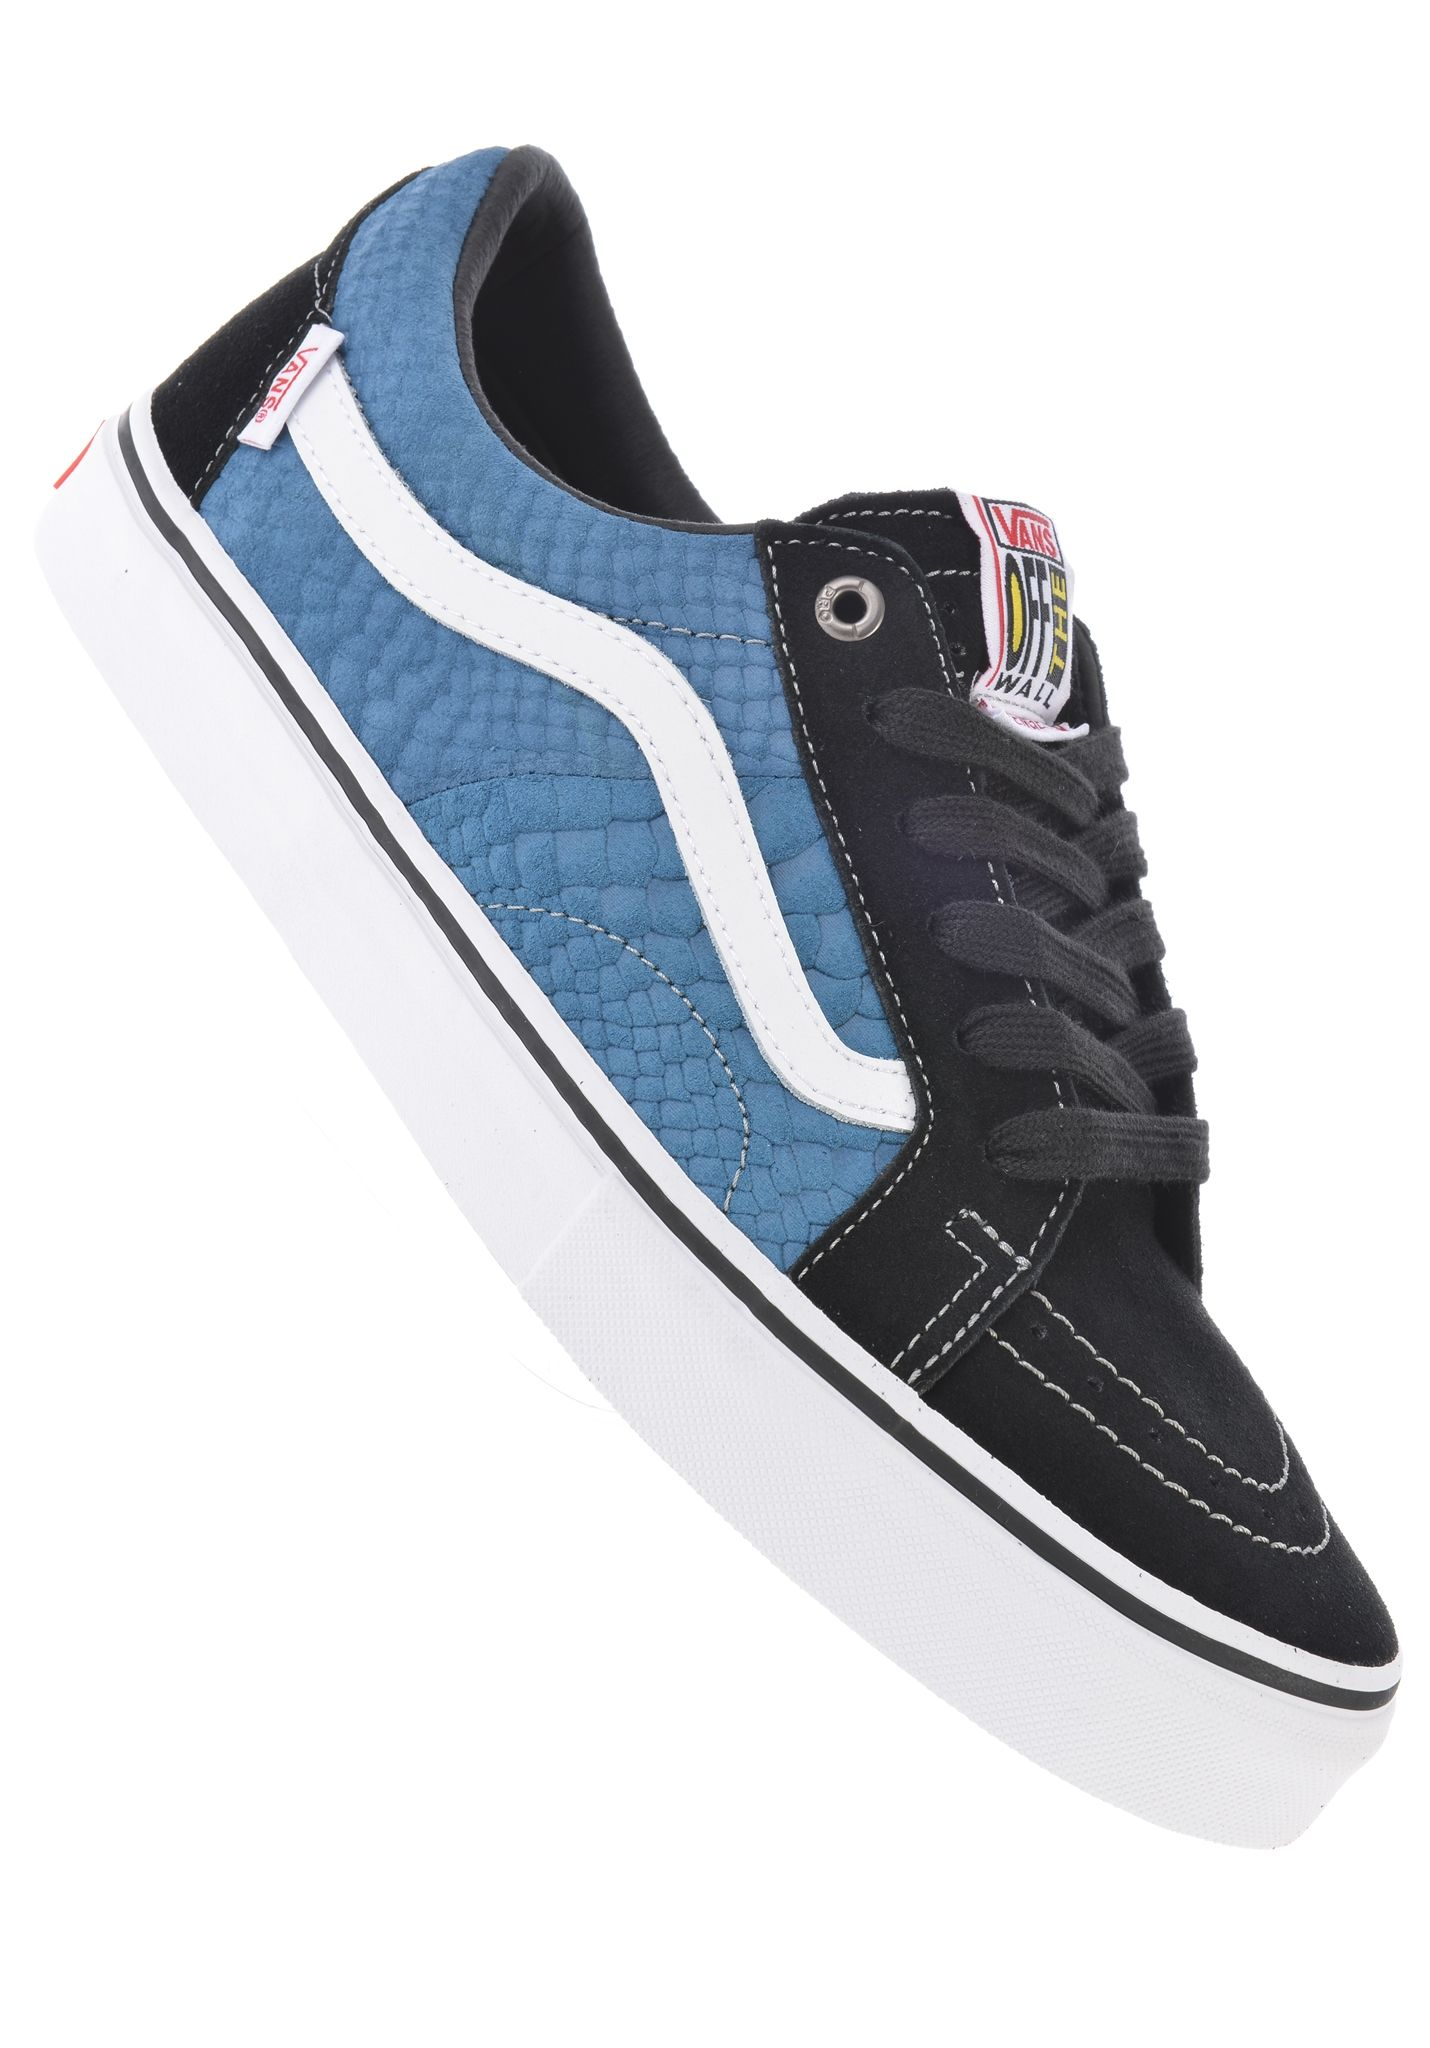 25f5fc86e4bdcb Vans AV Native American Low - Sneakers for Men - Black - Planet Sports